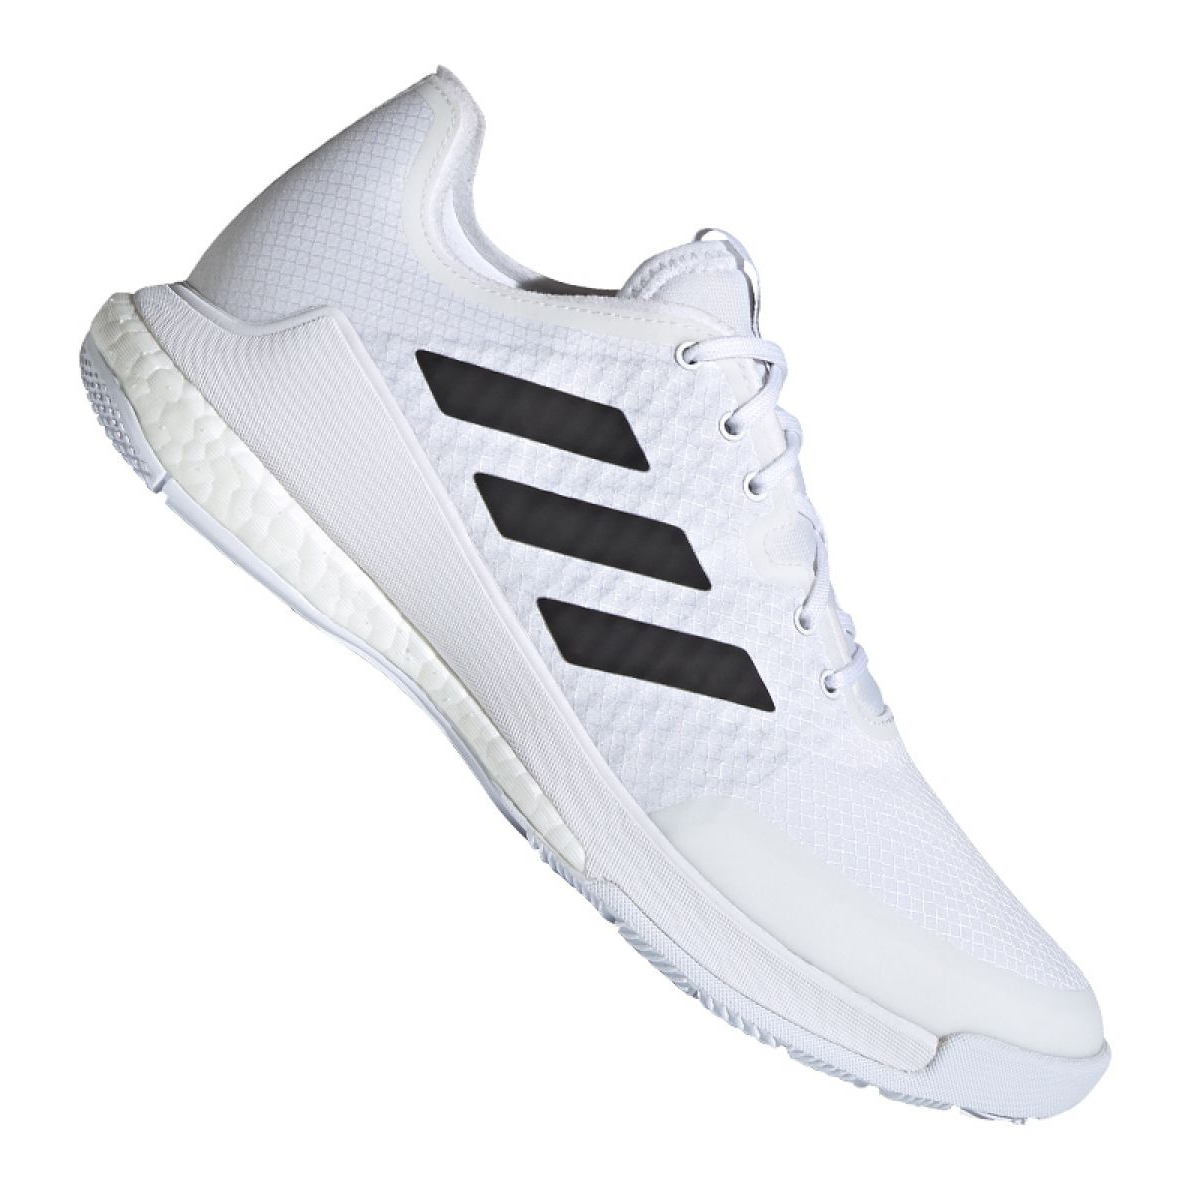 Adidas Crazyflight M FW8237 volleyball shoes multicolored white